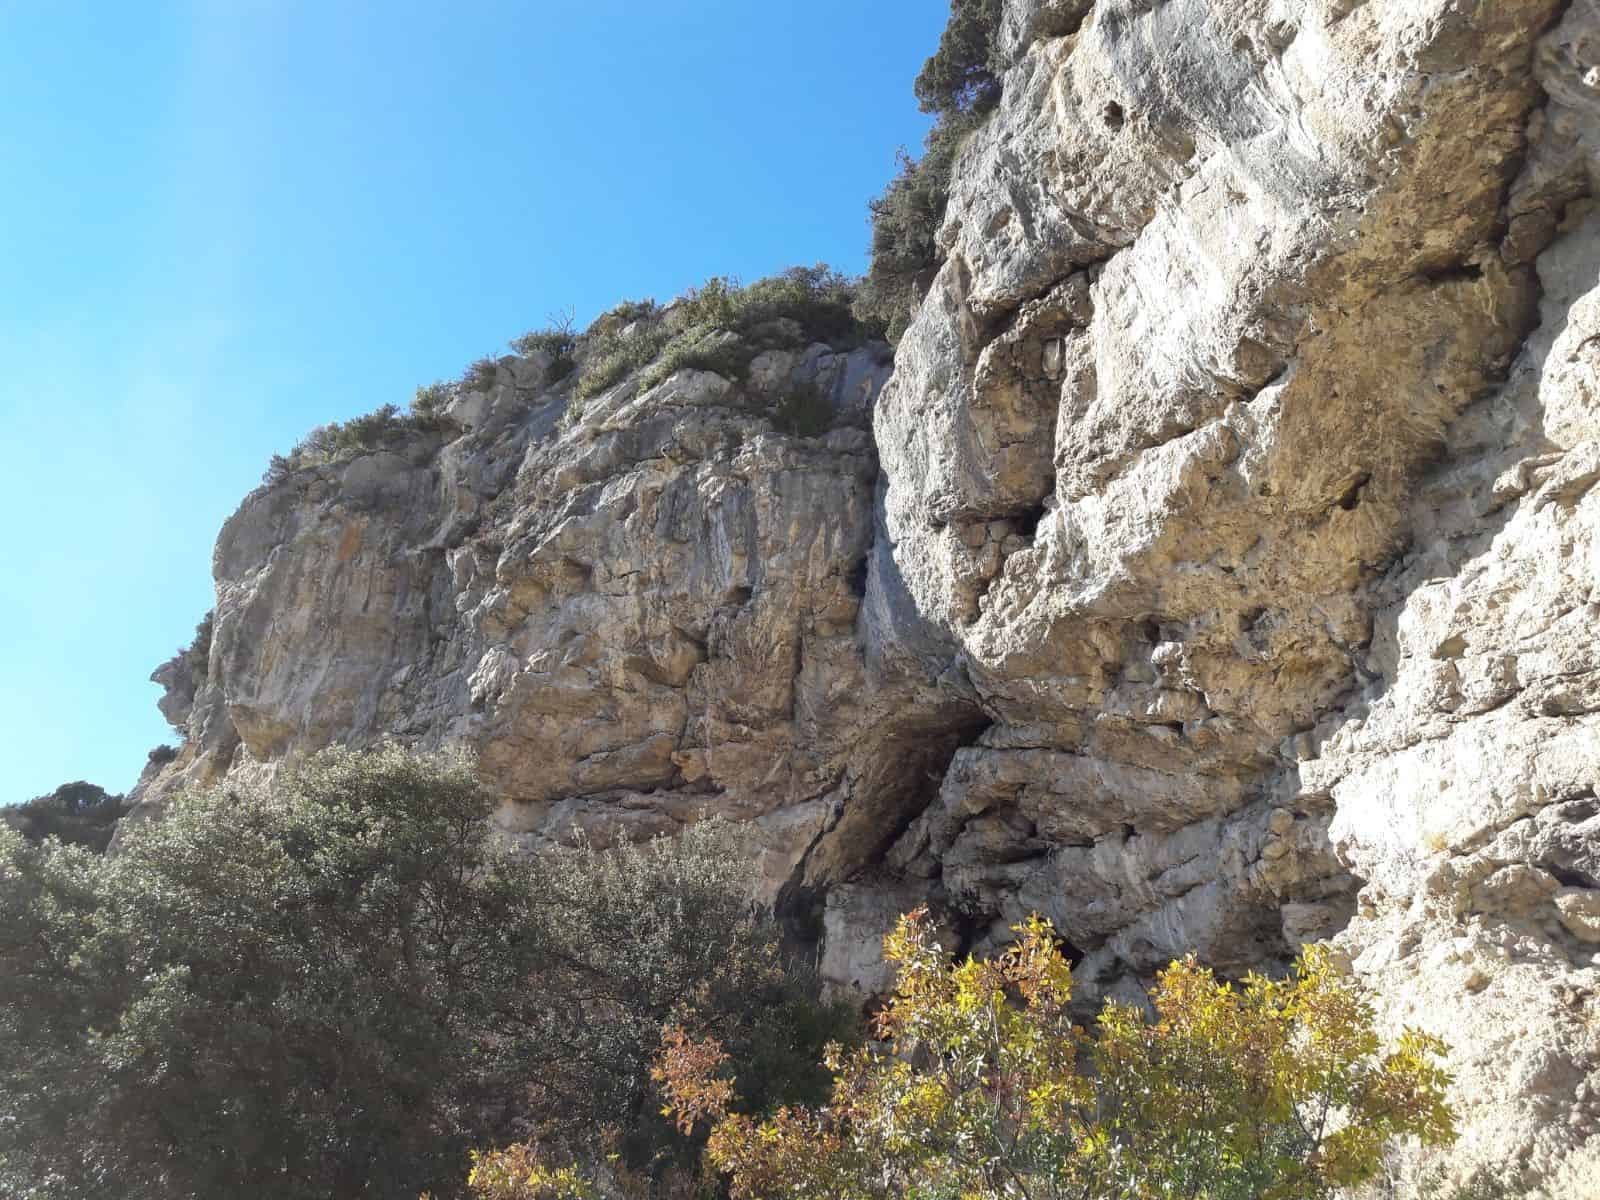 Arrampicare a Volx - Oliunìd is crag